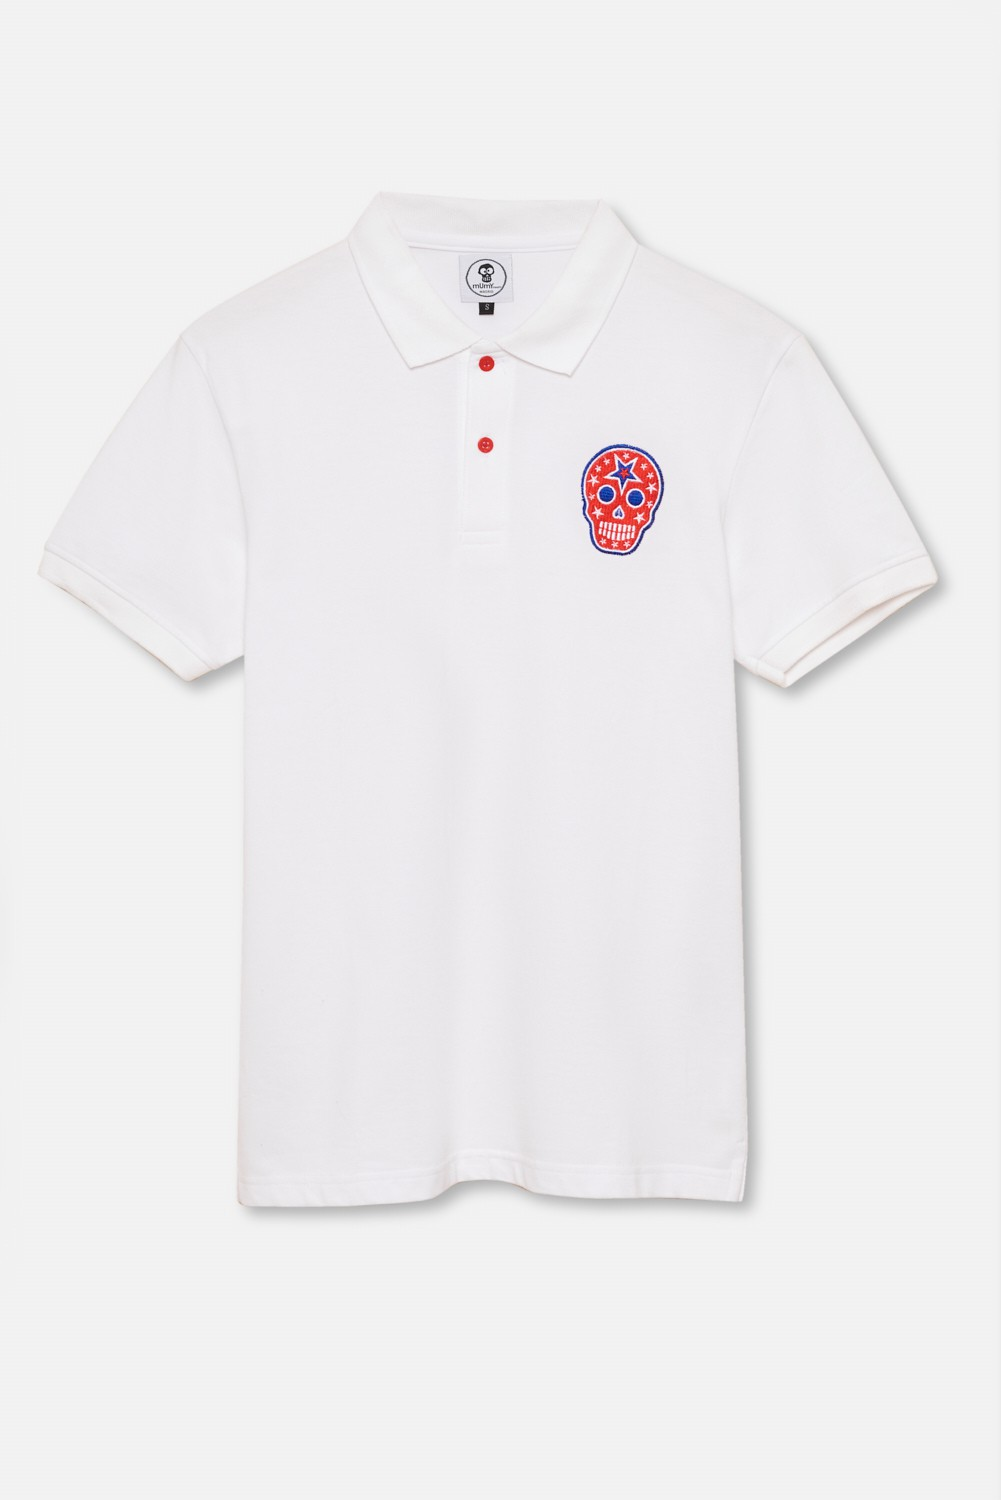 ADULT´S EMBROIDERED POLO RED SKULL IN WHITE